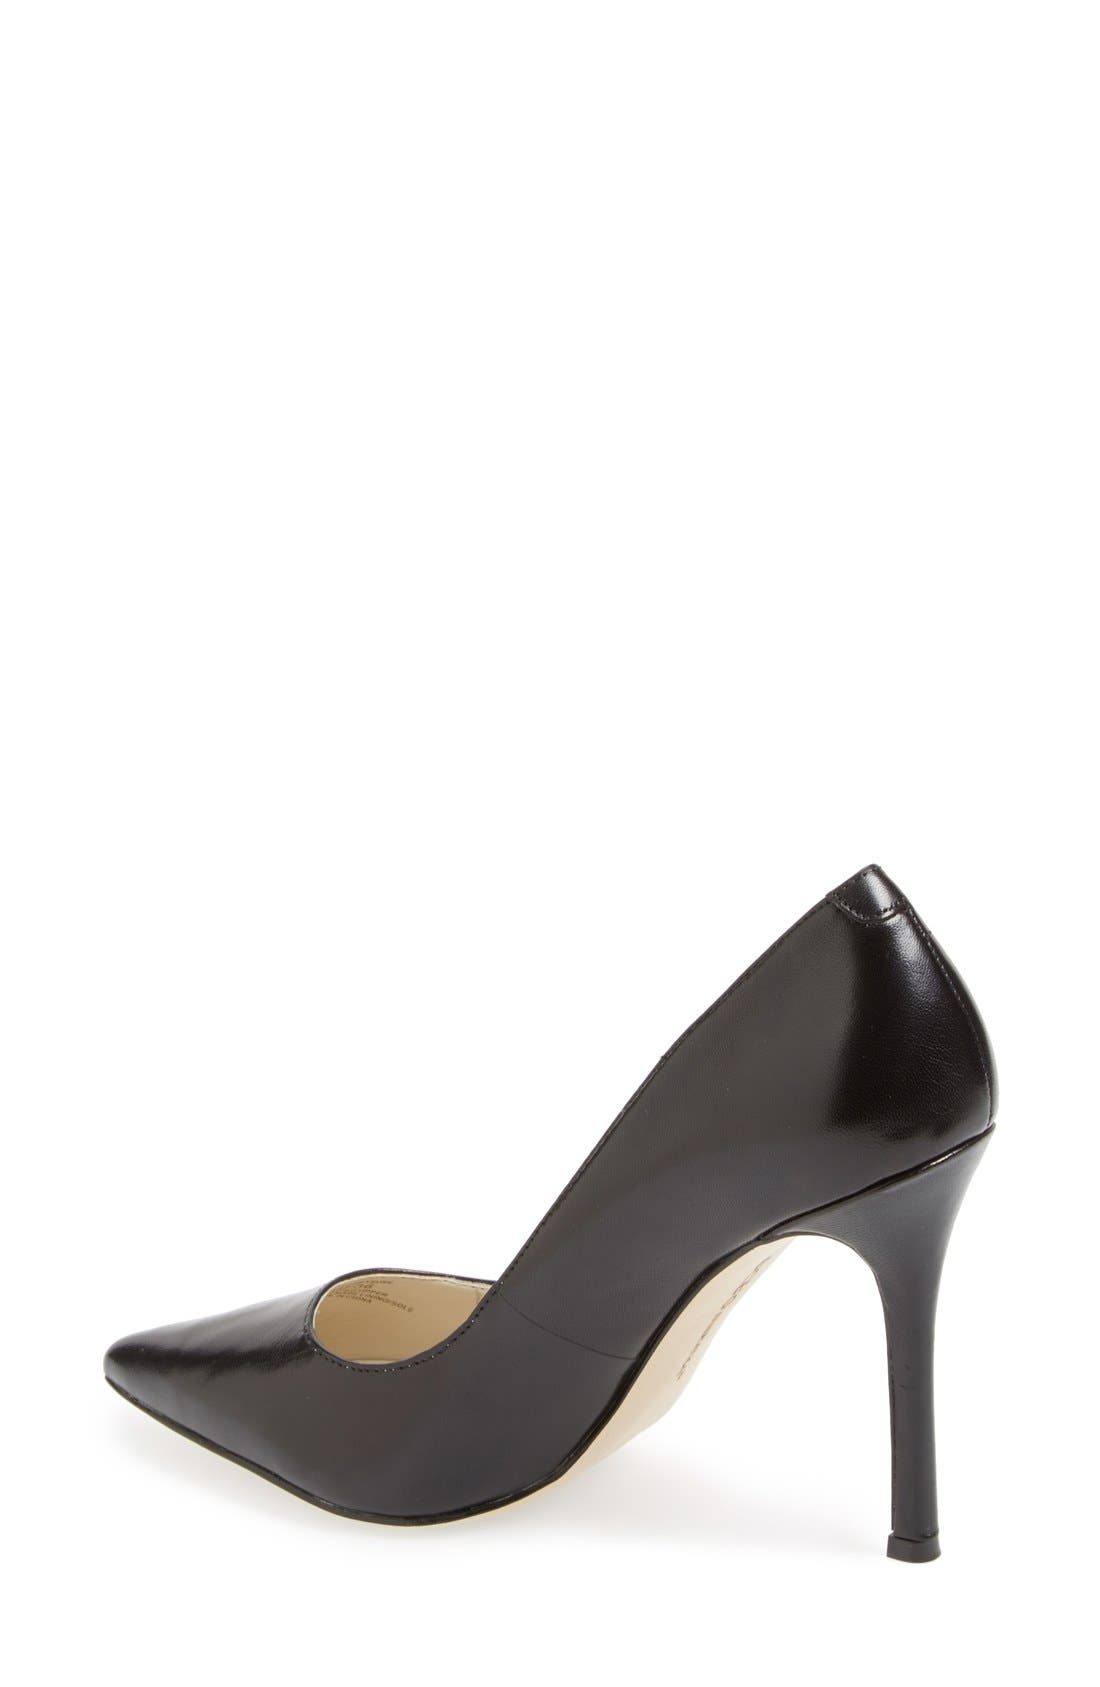 'Treasure' Pointy Toe Pump,                             Alternate thumbnail 3, color,                             001